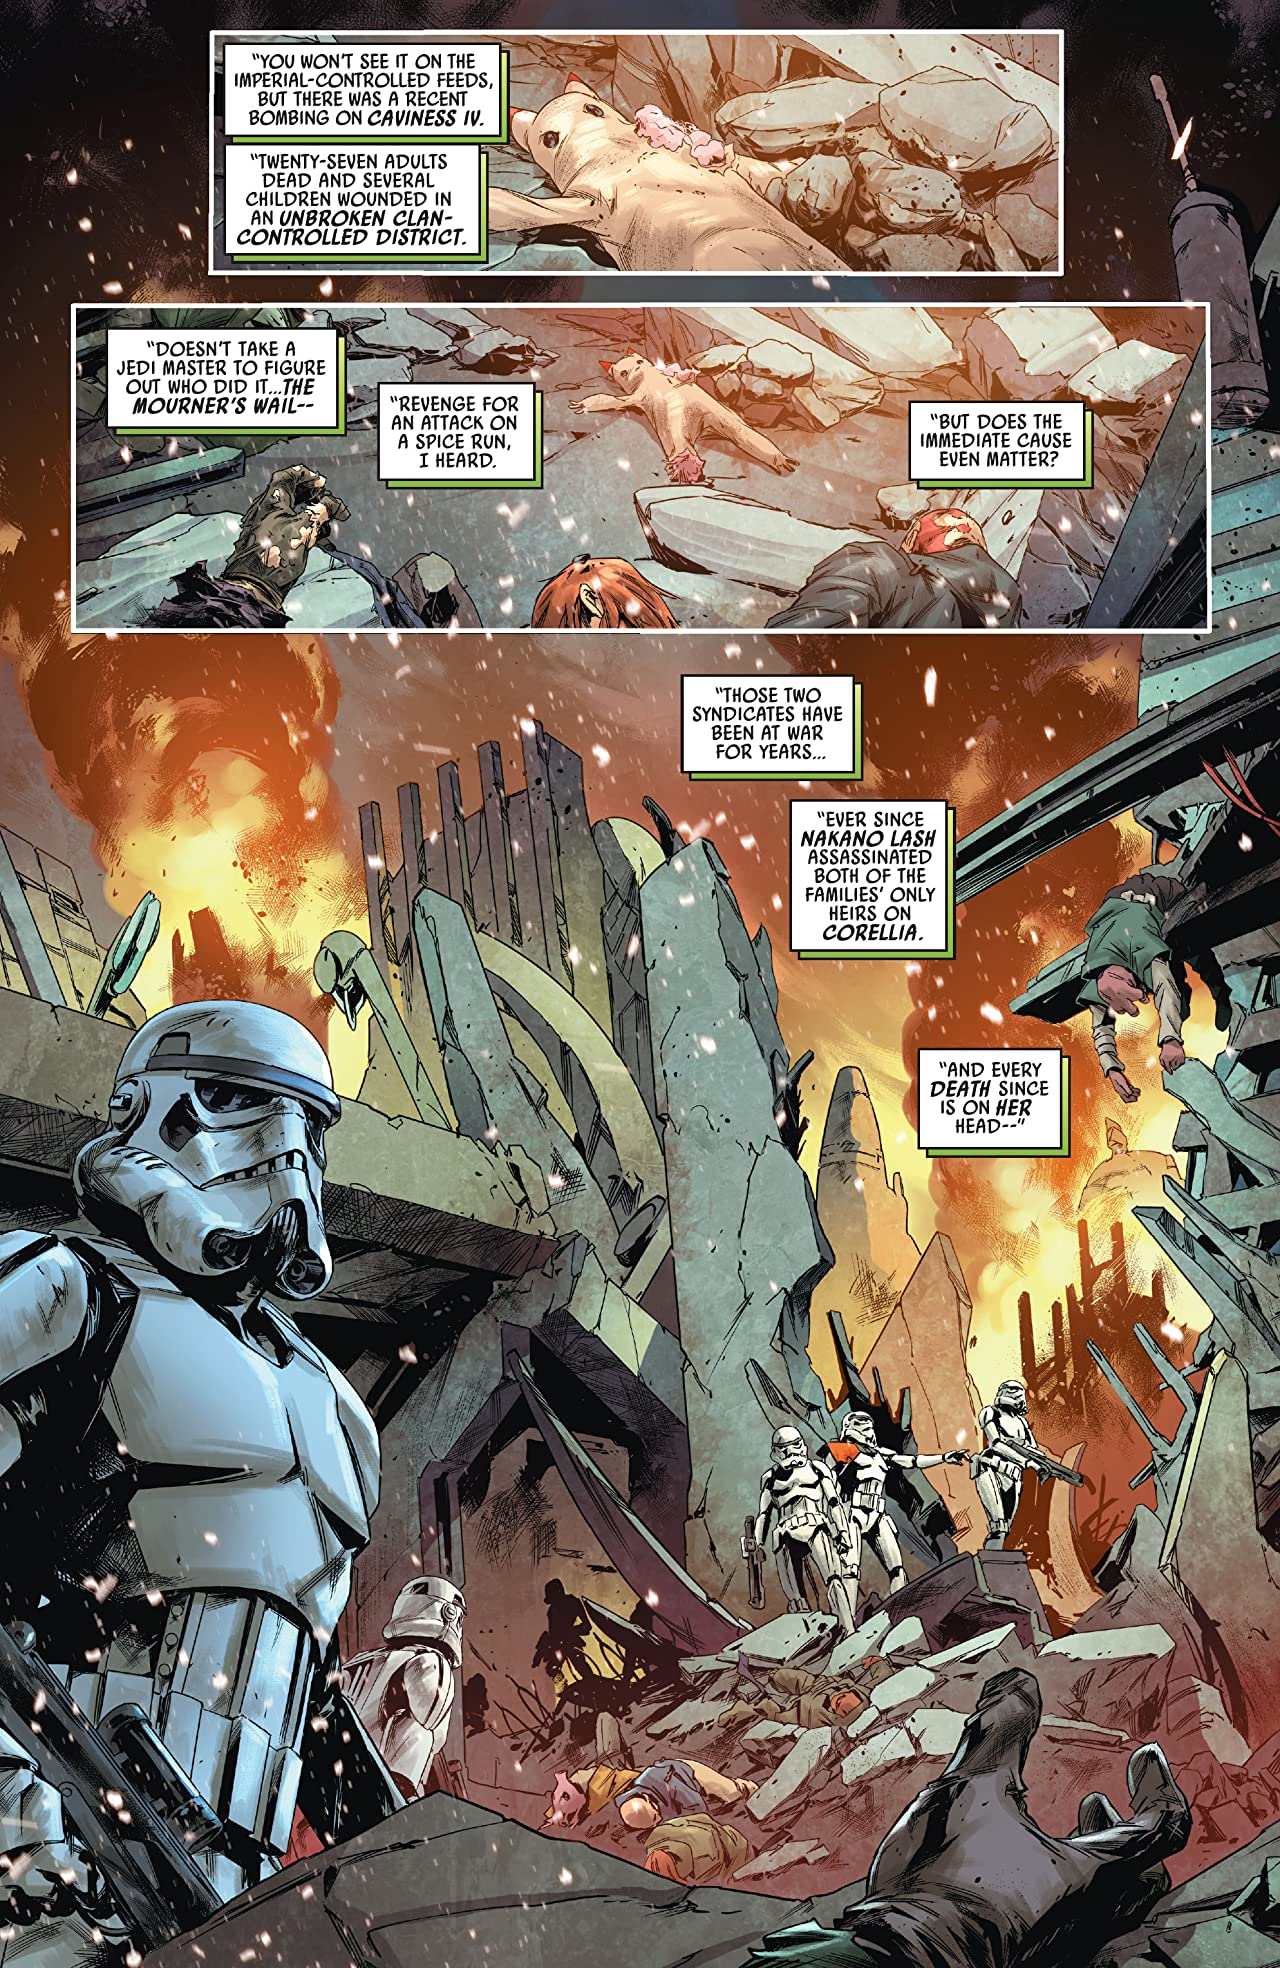 Star Wars: Bounty Hunters (2020-) #4